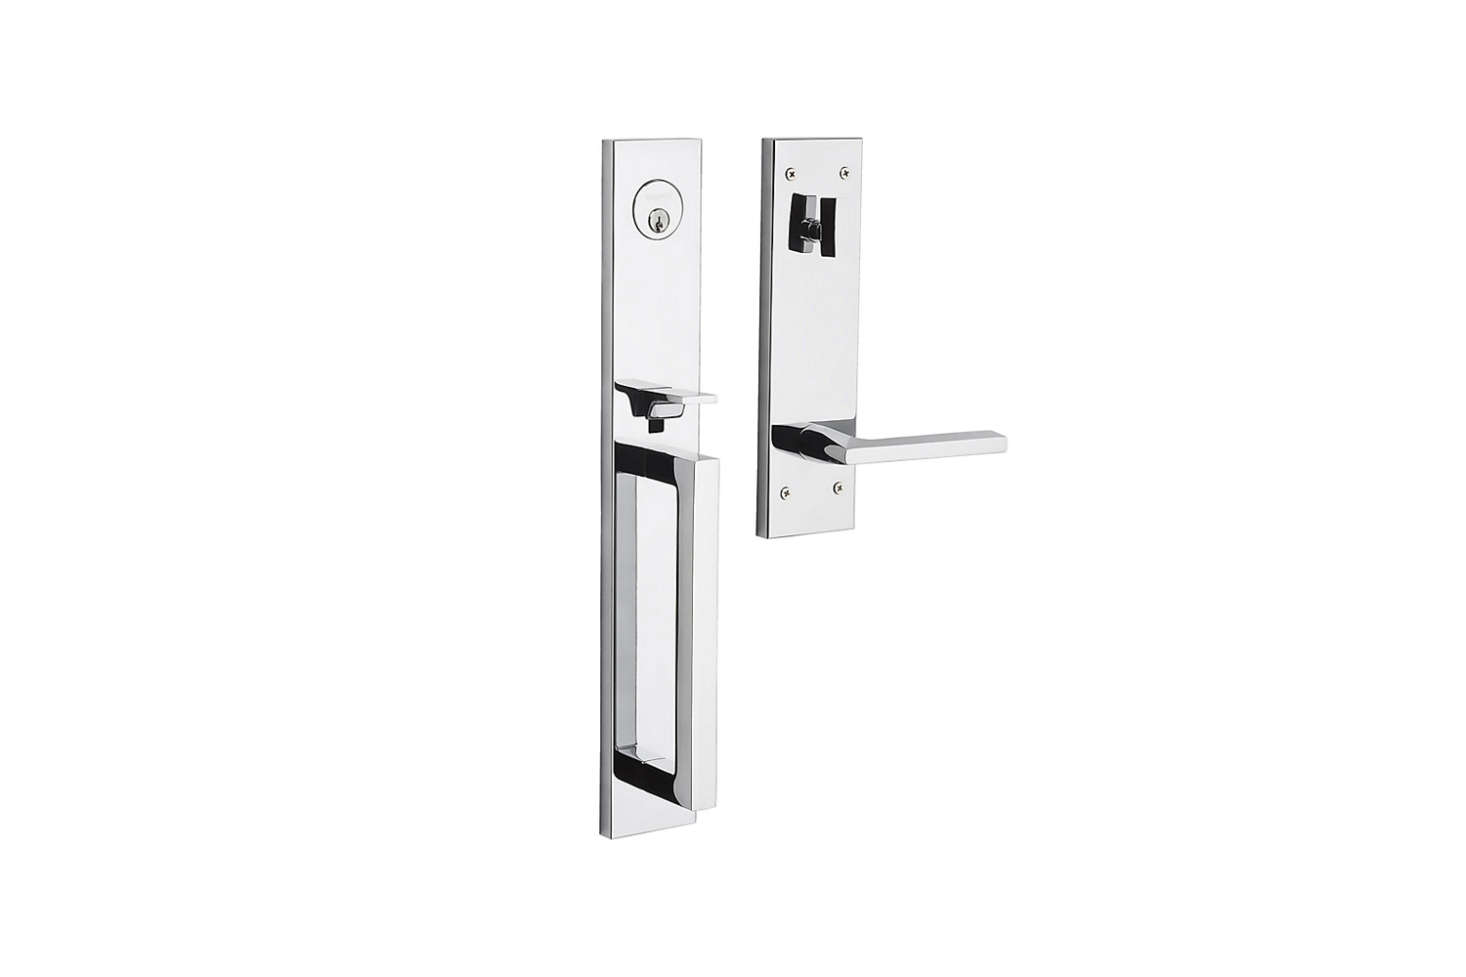 The Baldwin Minneapolis Full Escutcheon Handleset, shown in Polished Chrome, is $433.80 at Door Hardware Supply.